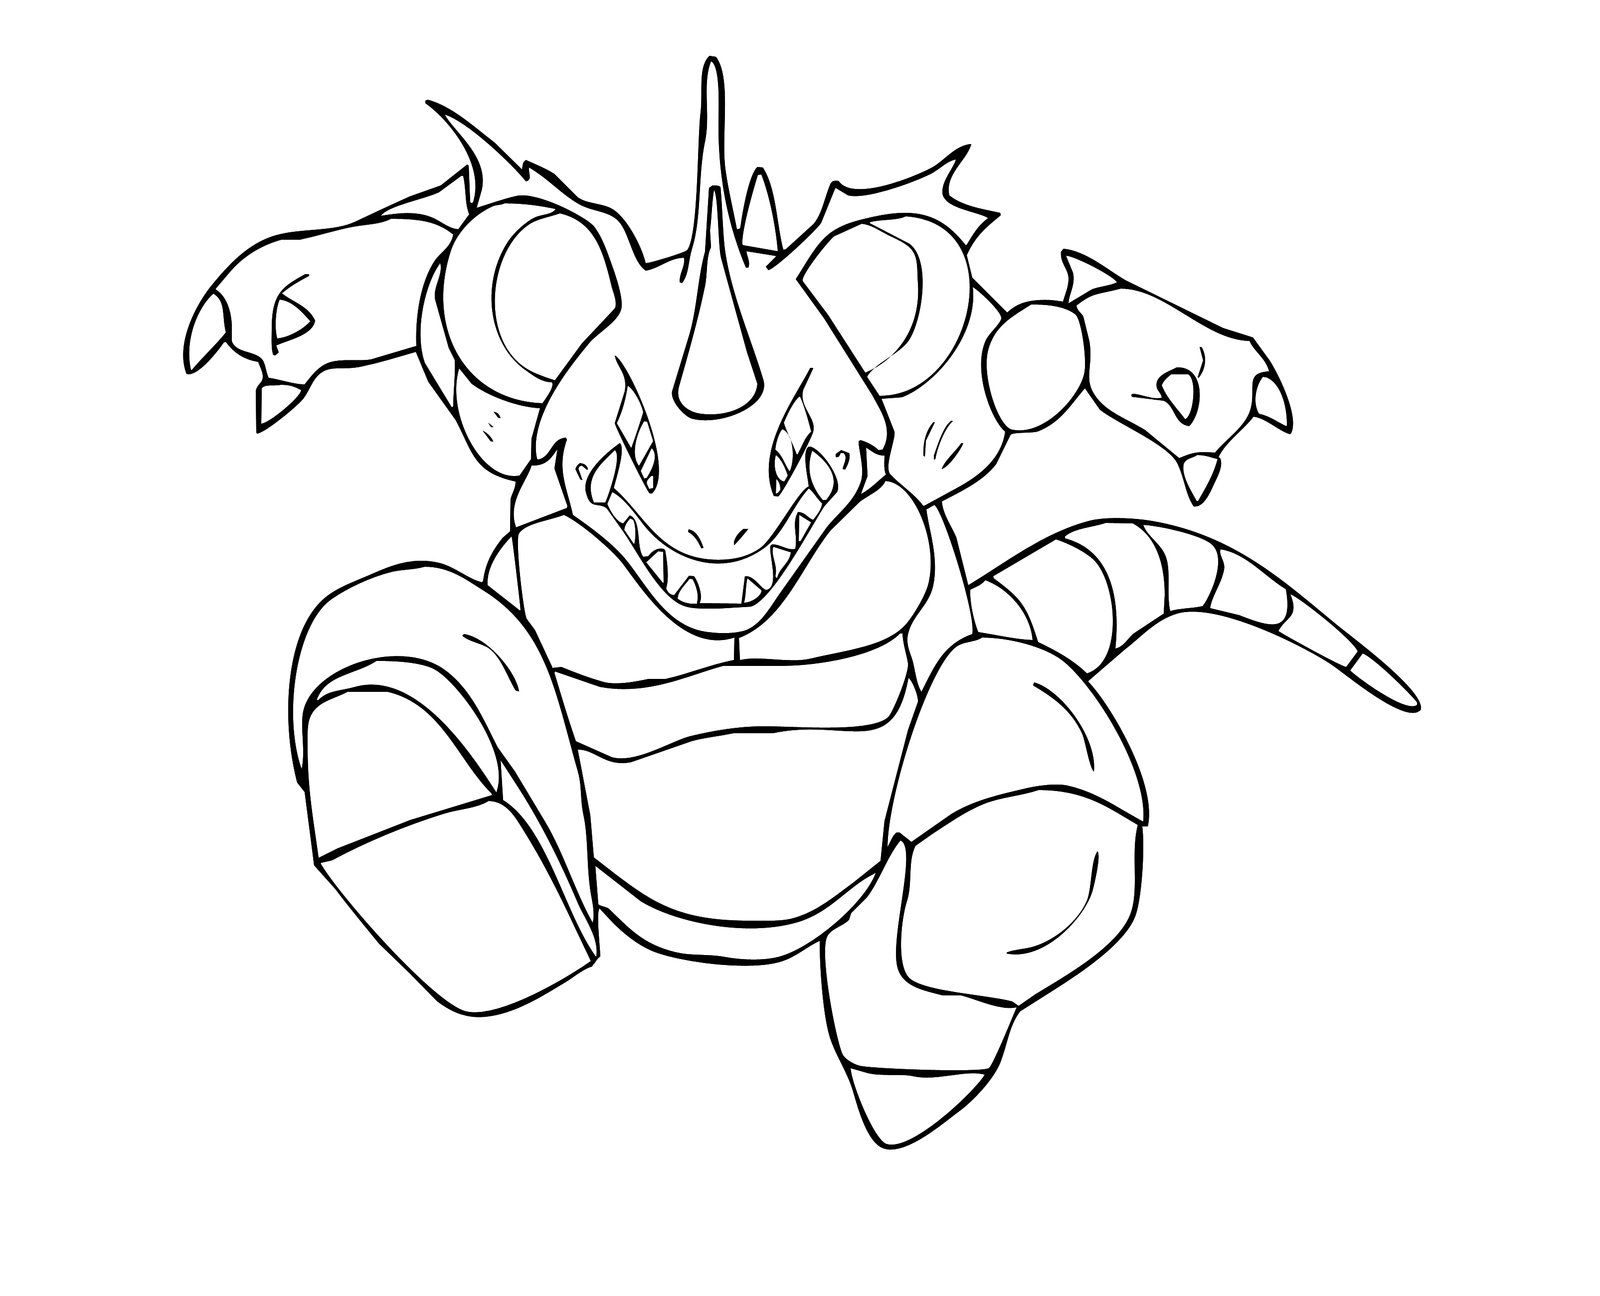 weezing pokemon coloring page nidoking coloring pages at getcoloringscom free page coloring weezing pokemon